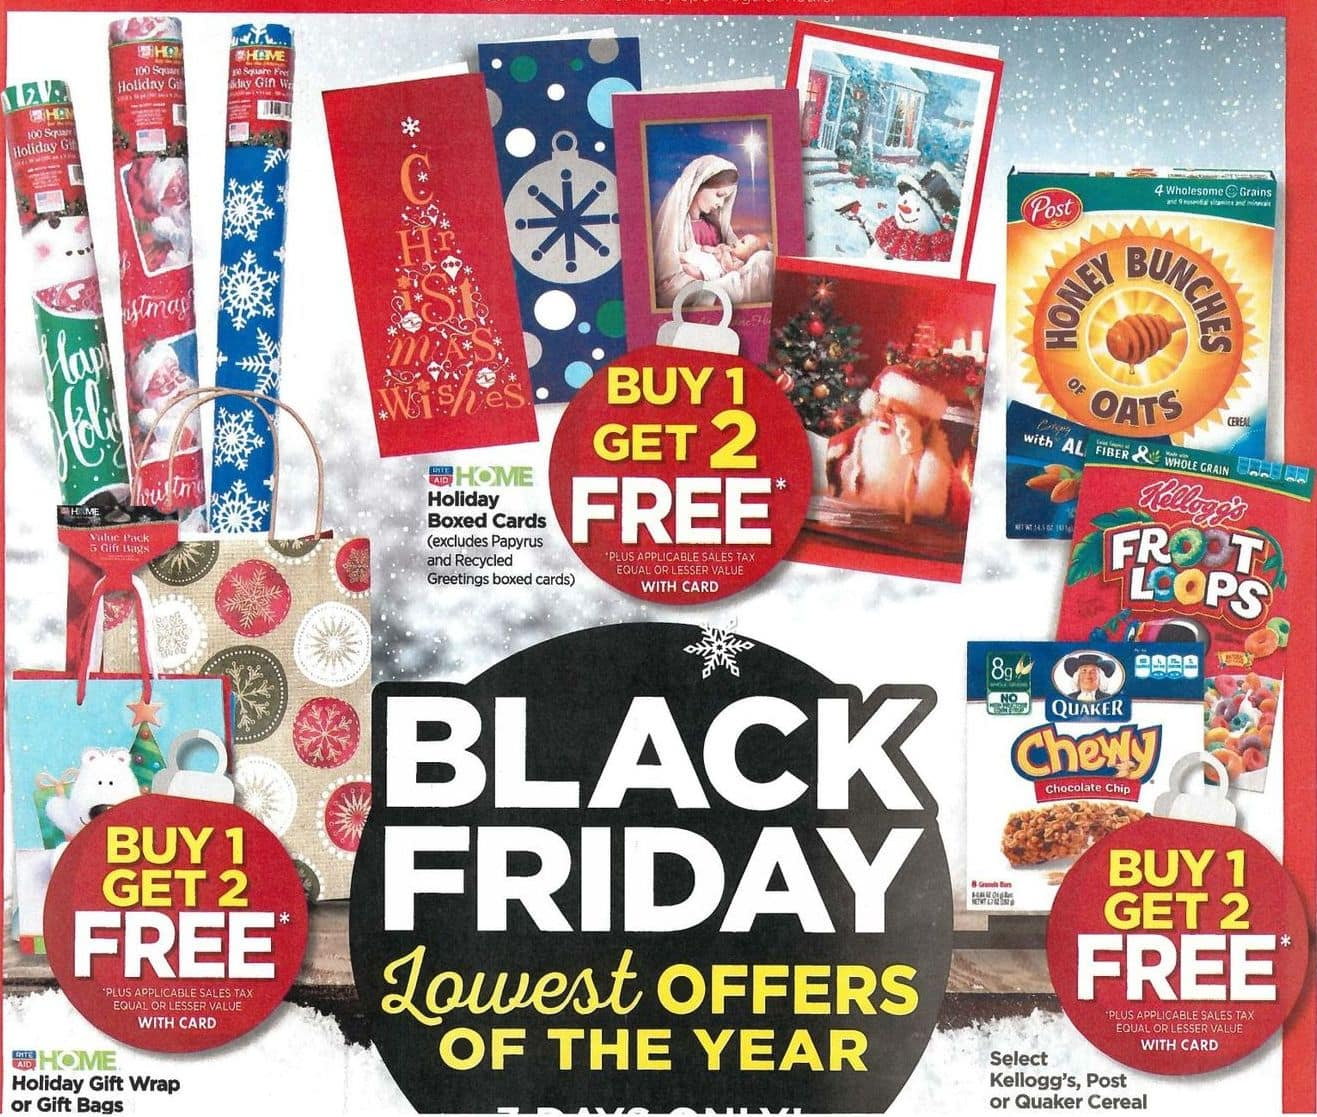 Rite Aid Black Friday: Holiday Gift Wrap or Gift Bags, Your Choice ...